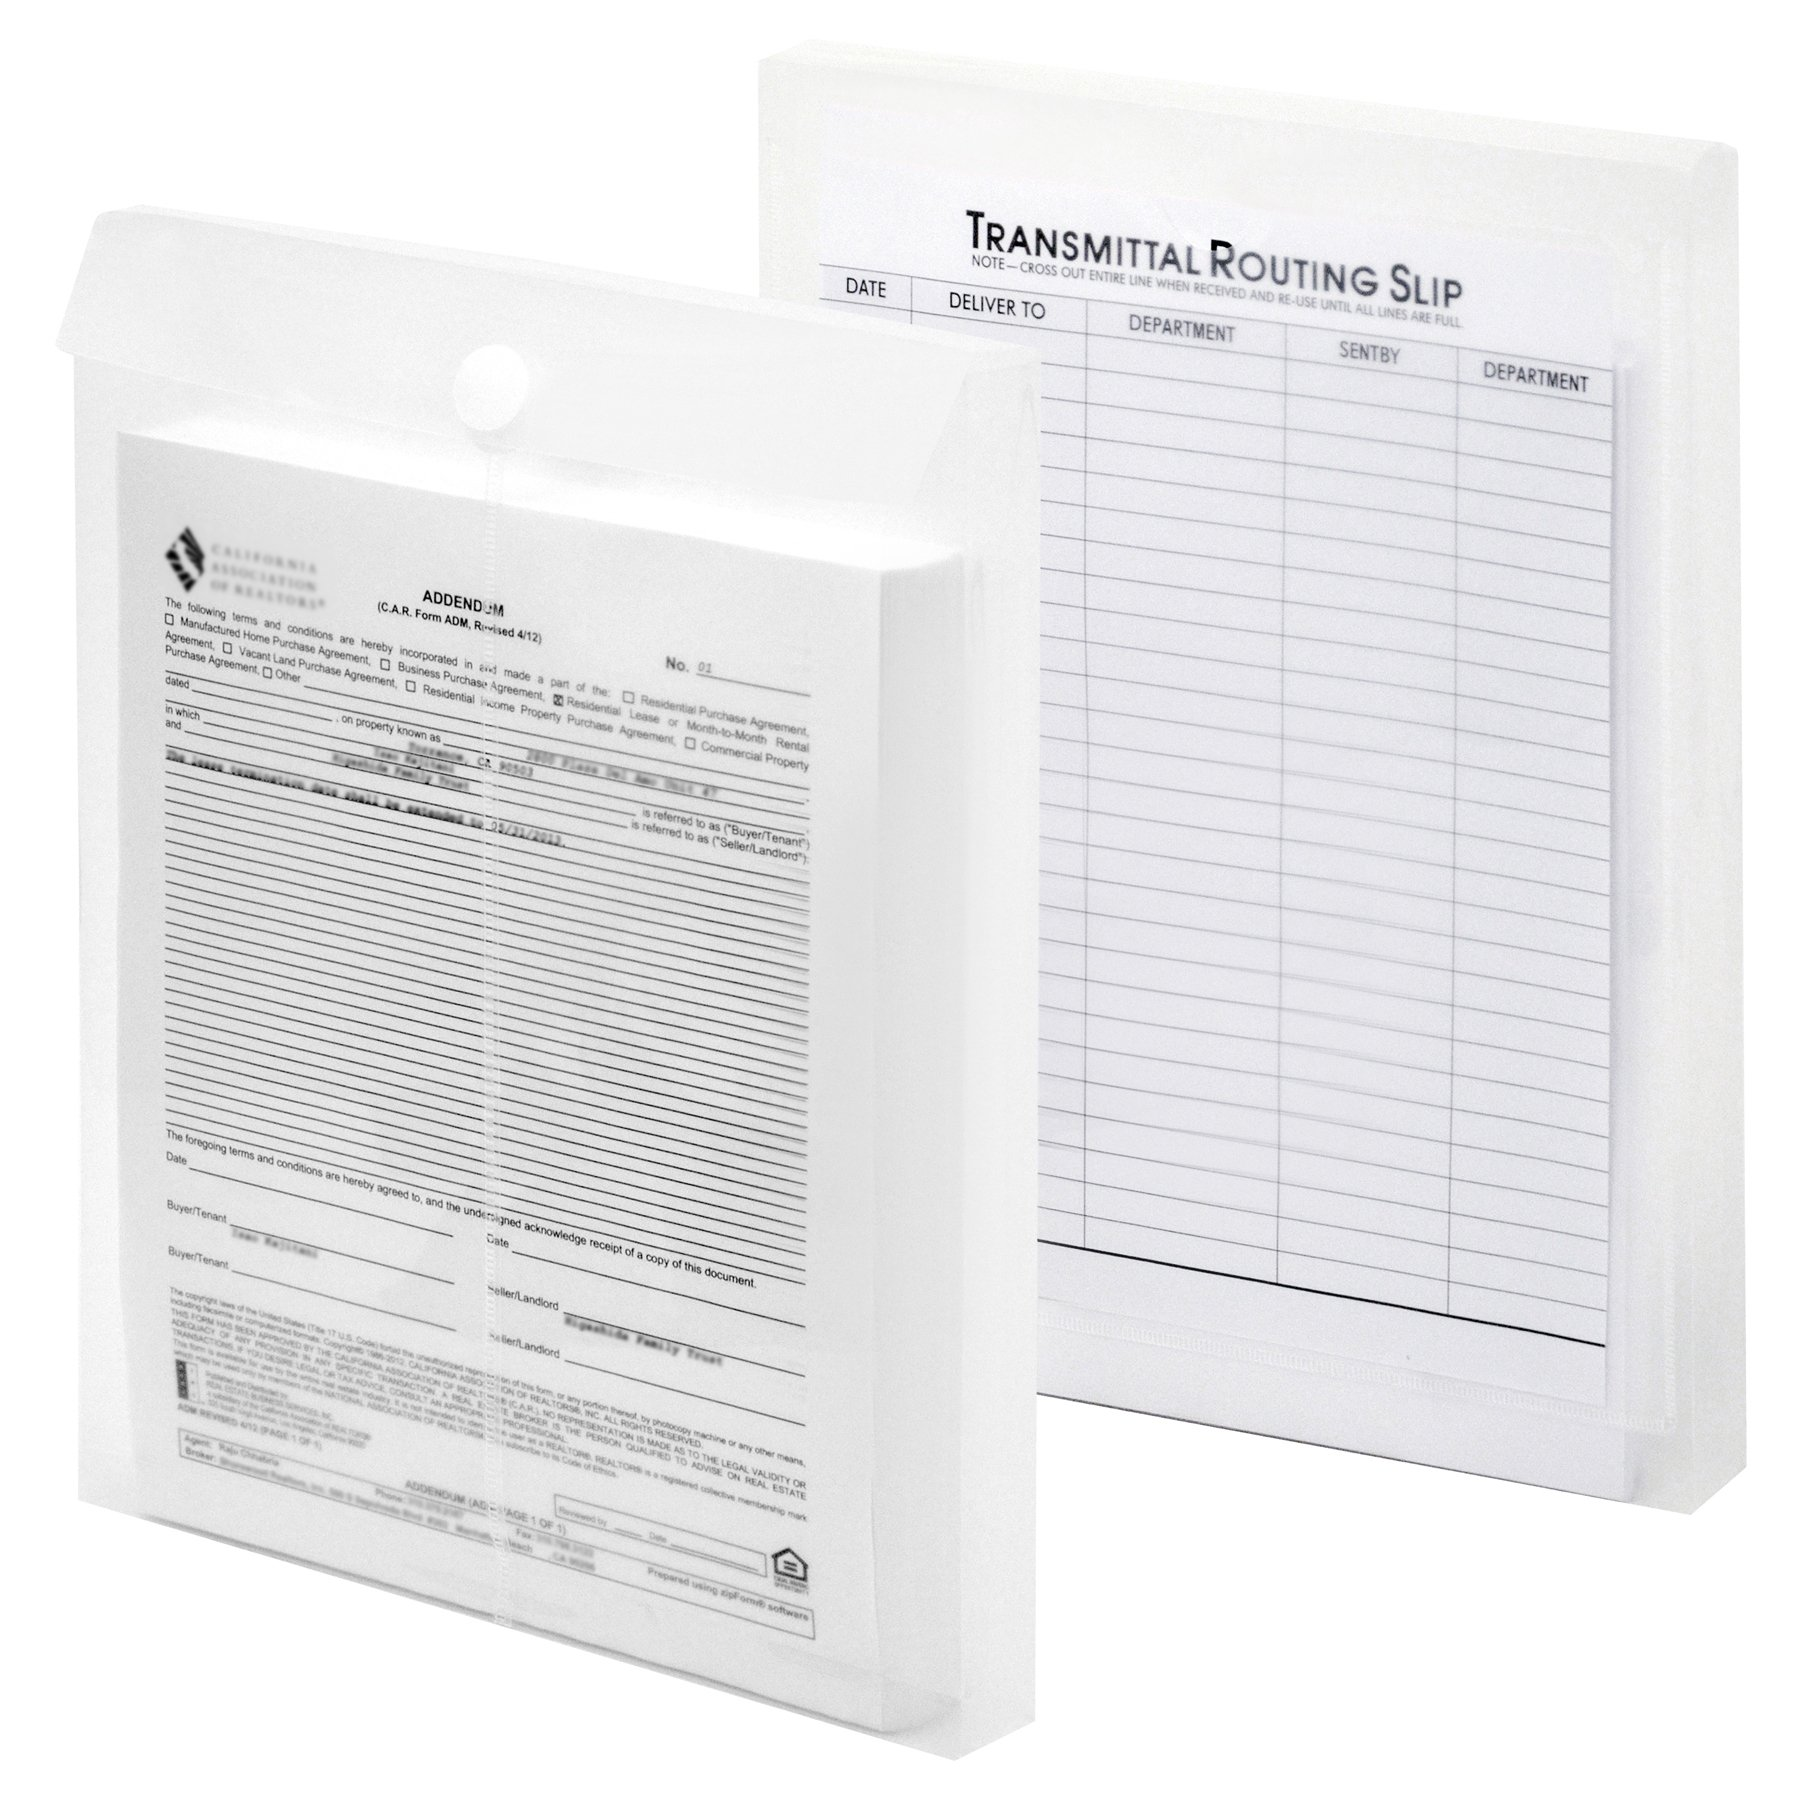 Lion File-N-Send Poly Inter-office Envelopes, 10 x 13 Inches, Clear, 6 EA/Pack, 1 Pack (22700-CR)